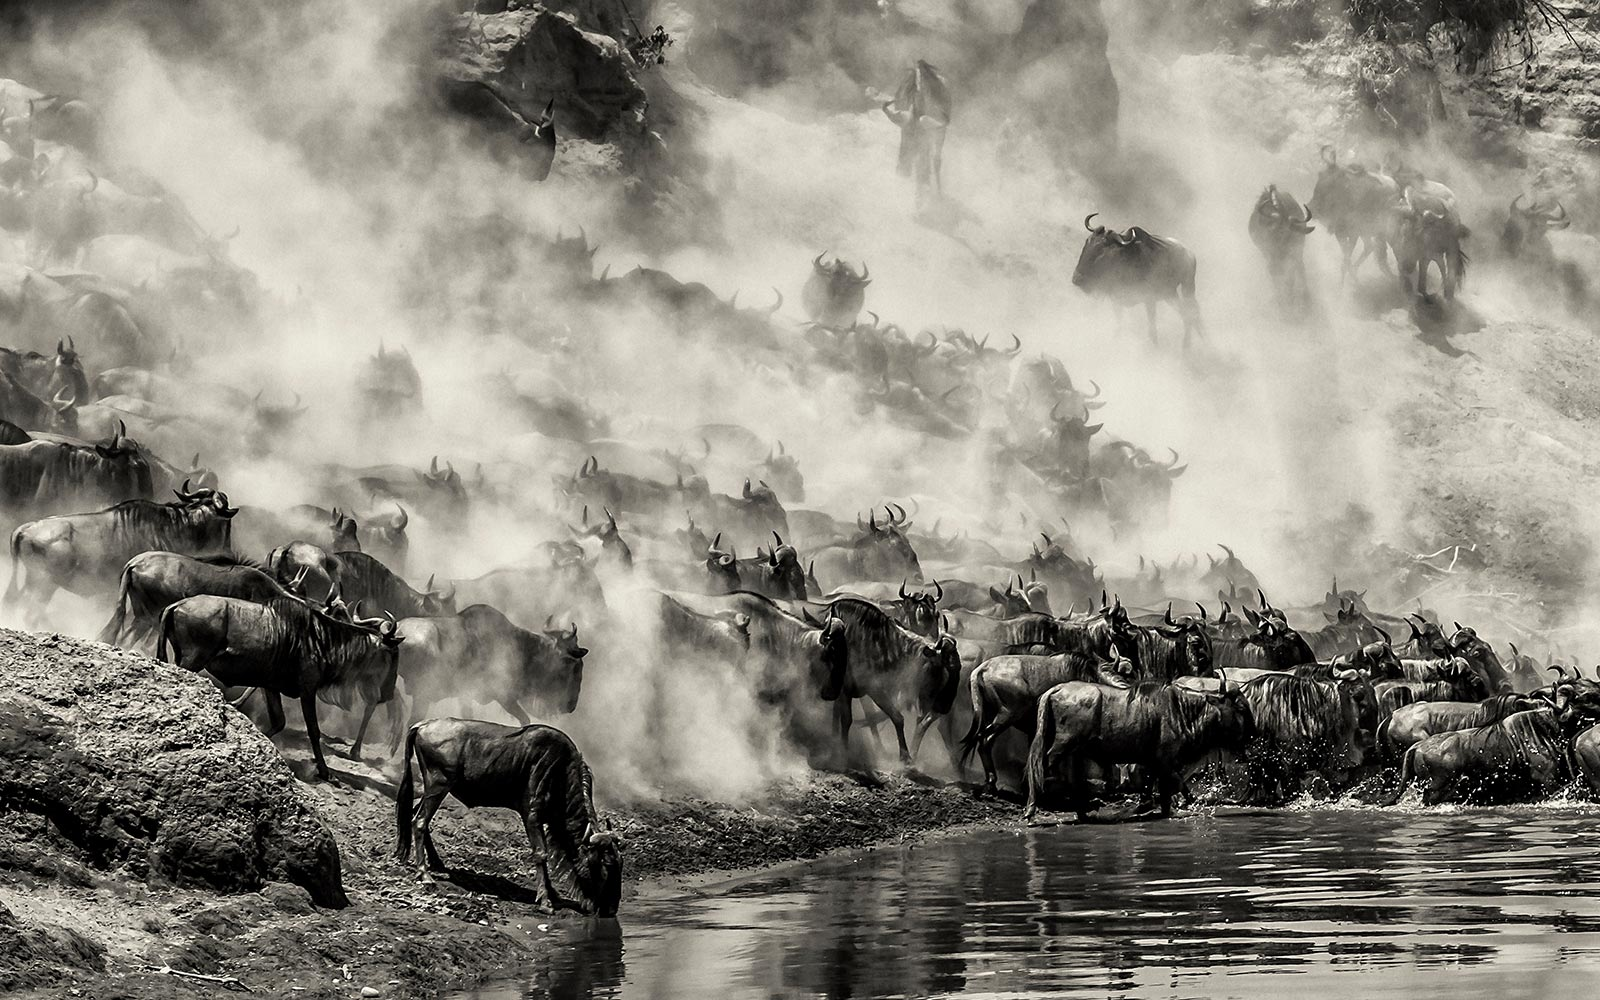 The great Wildebeest migration safari